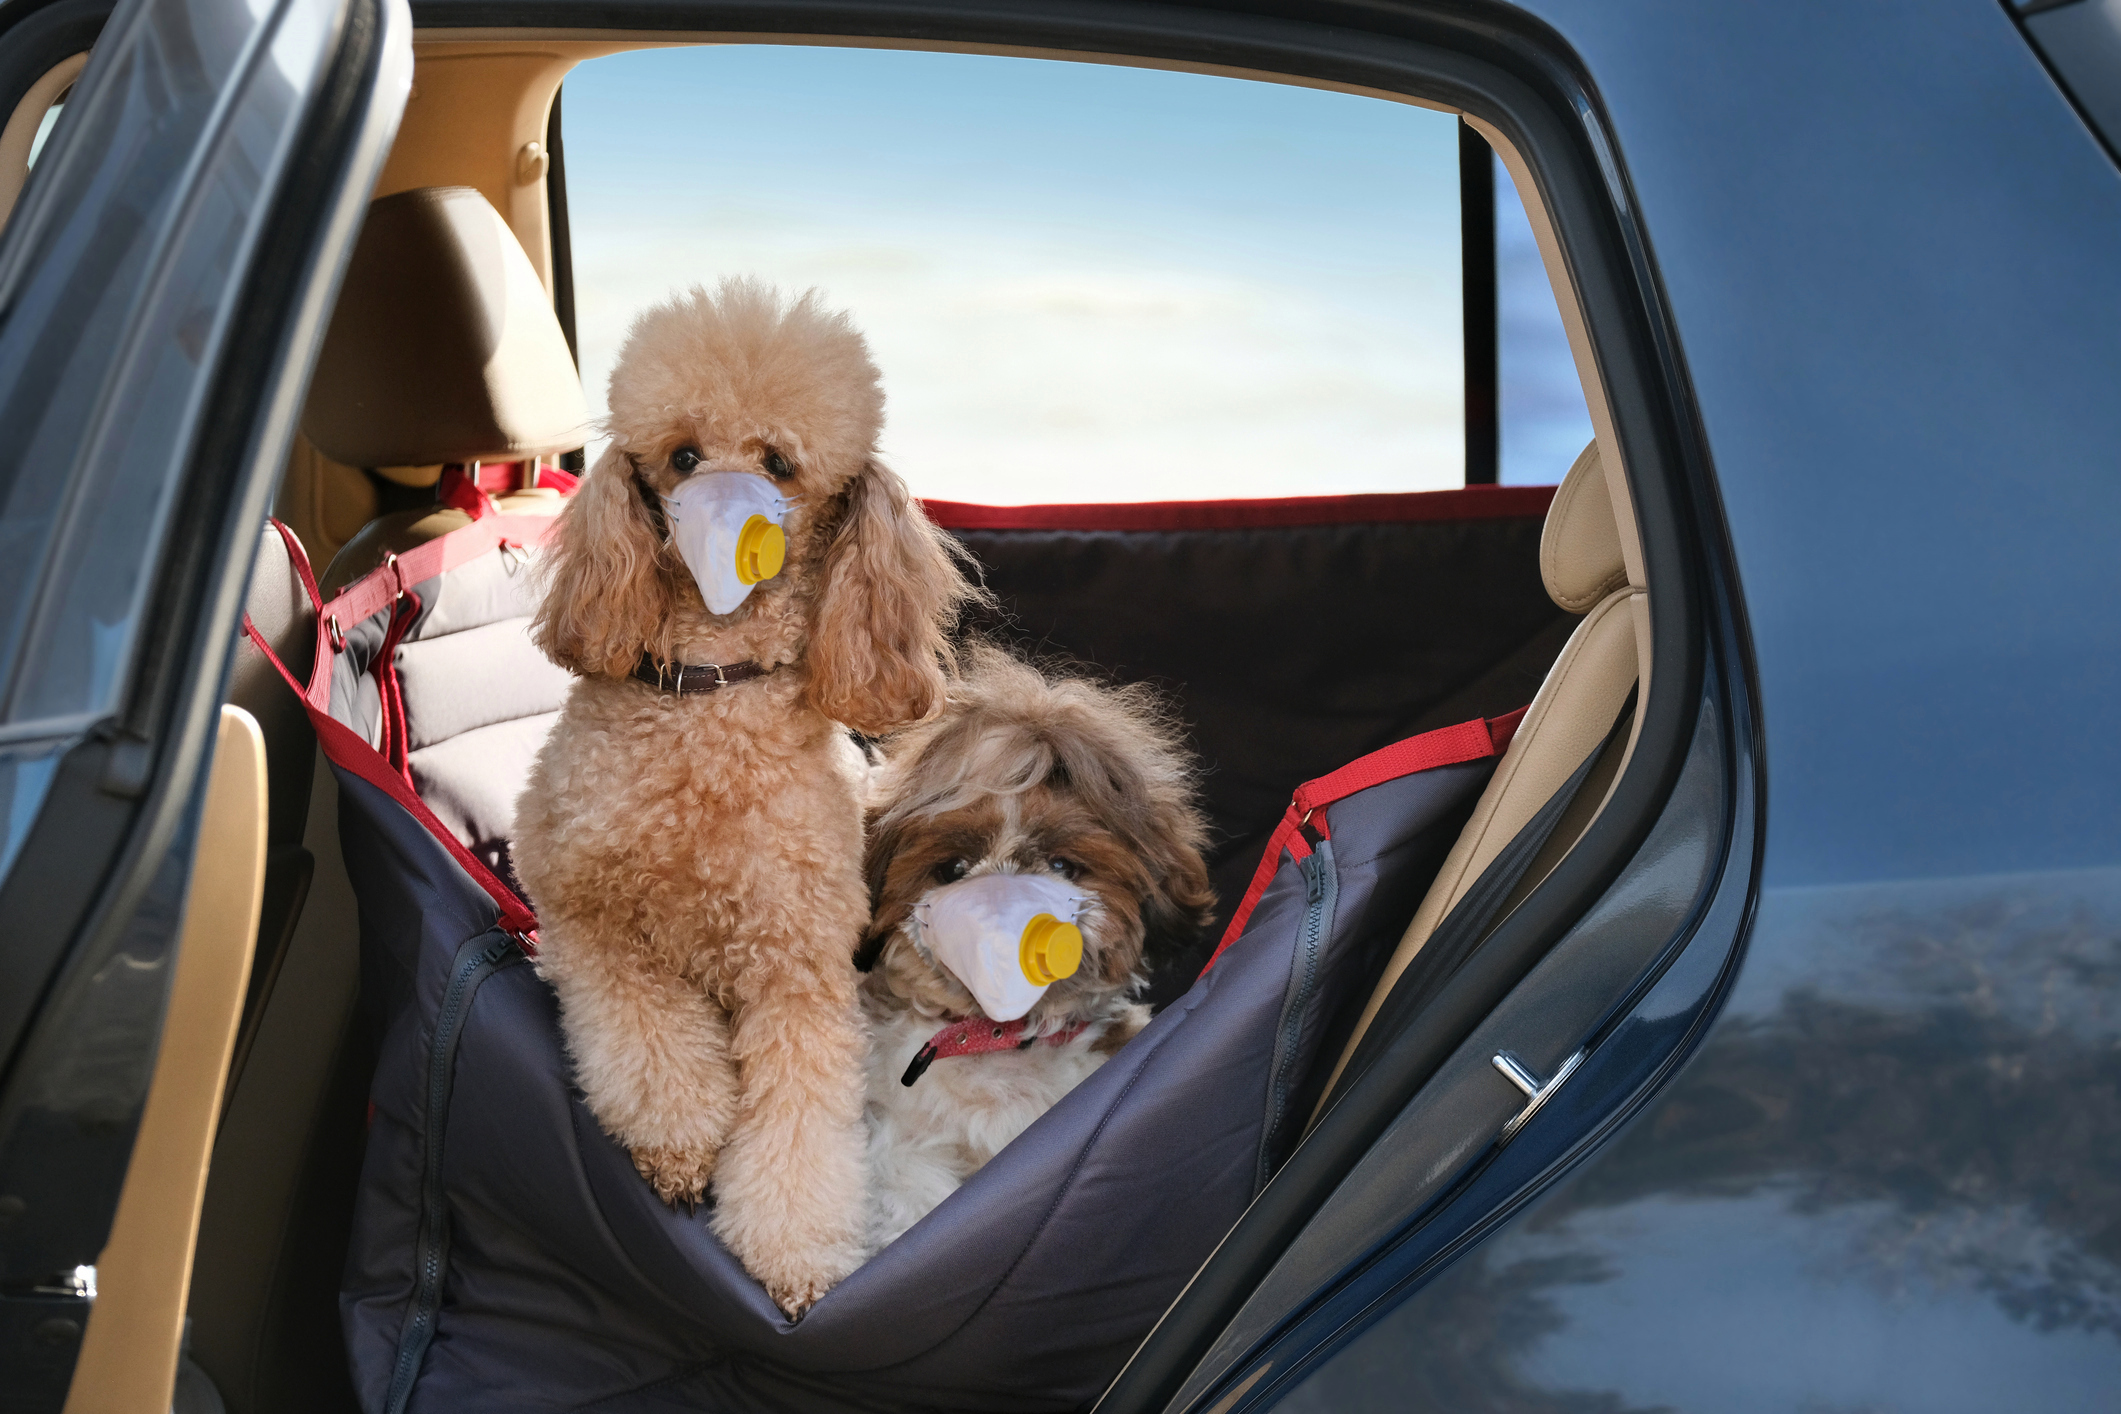 Today pet vet Sean McCormack helps out poodles who won't travel in the car